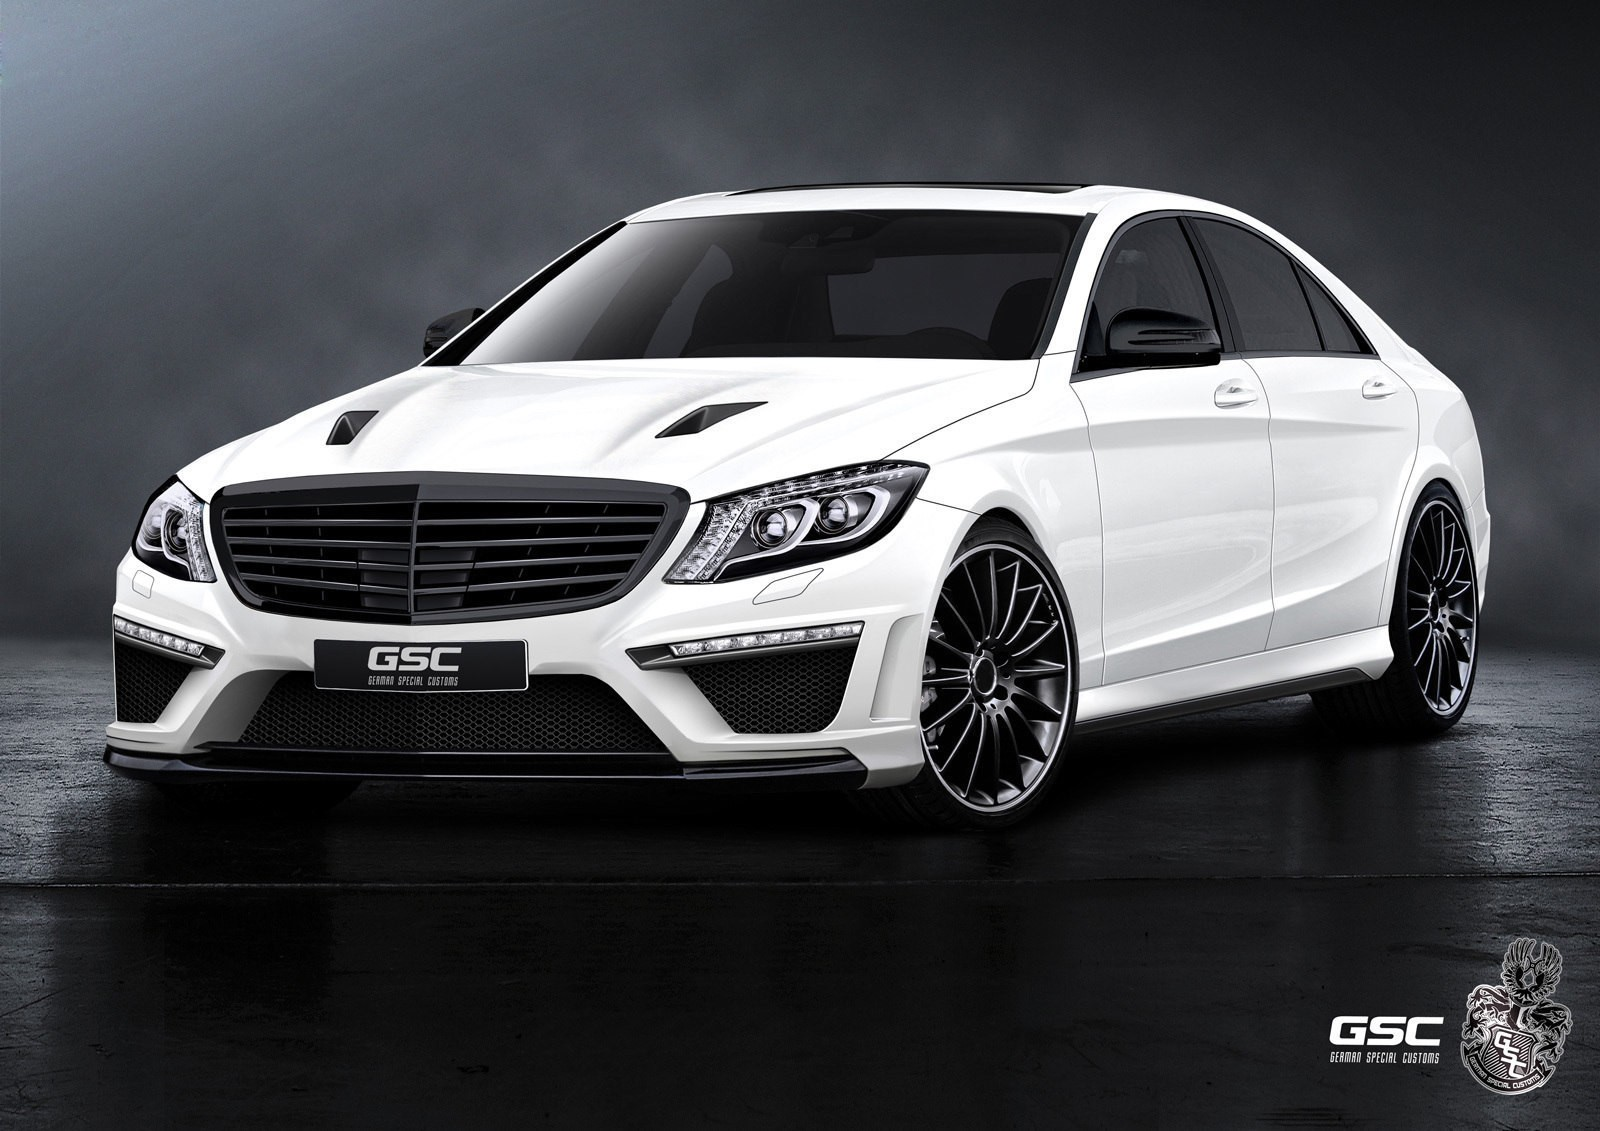 2013 GSC - Mercedes S63 AMG Bodykit